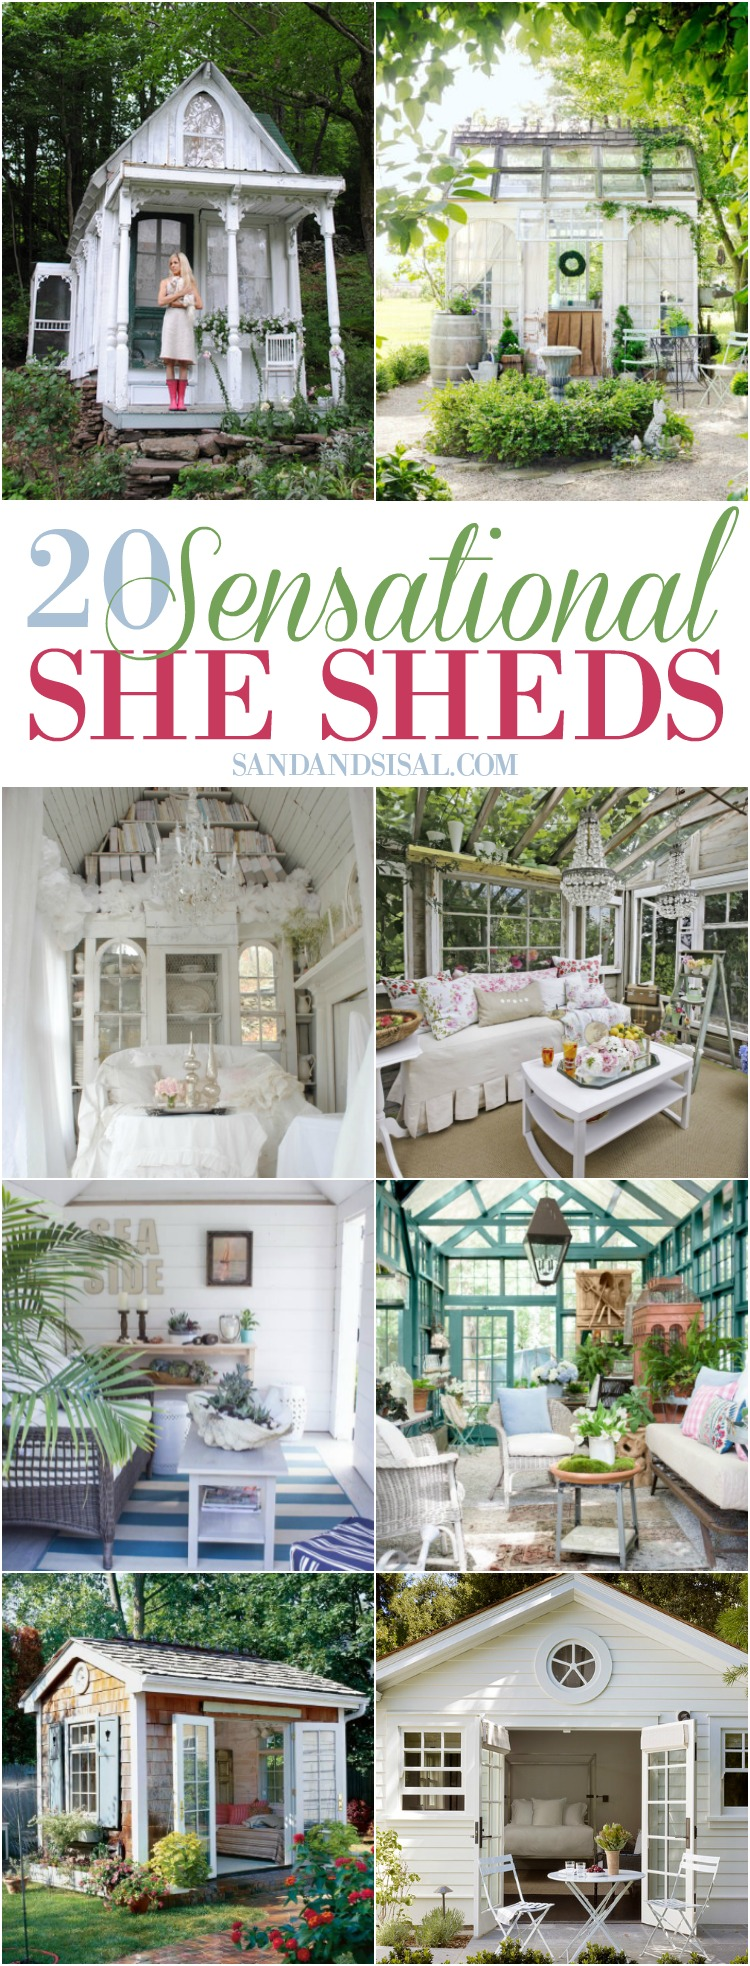 20 Sensational She Shed Ideas